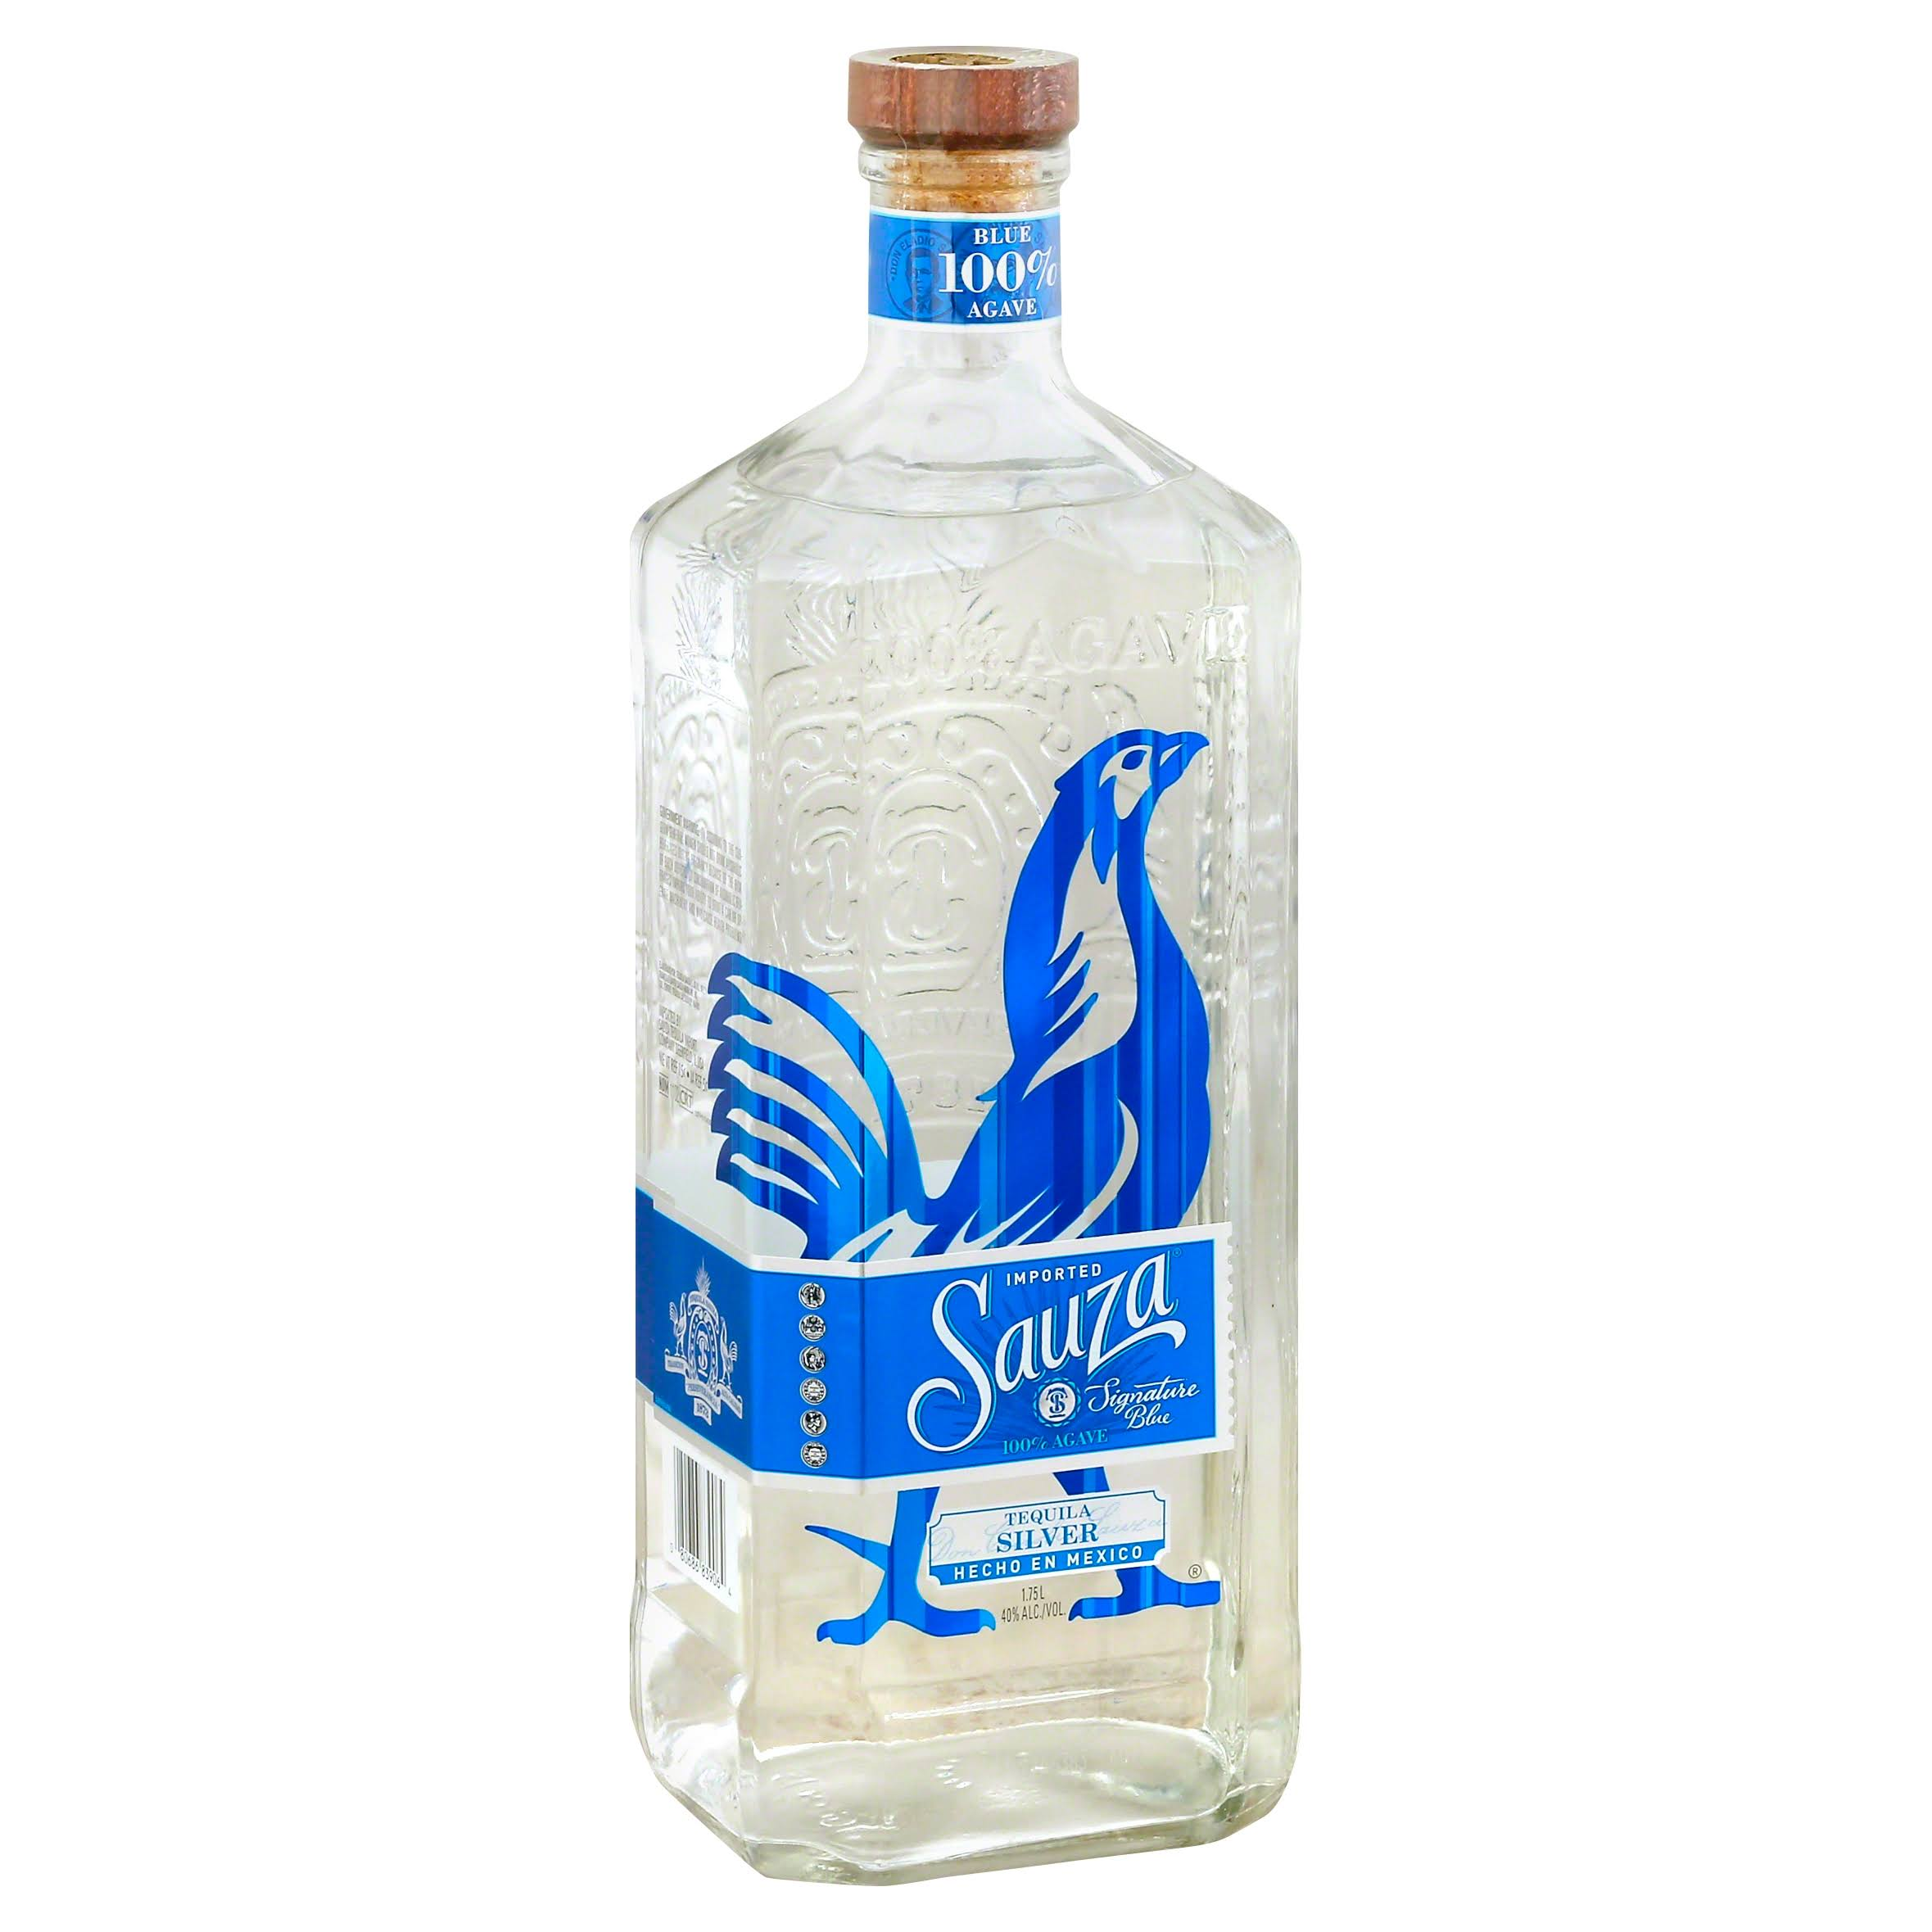 Sauza Blue Silver Tequila - 1.75 L bottle